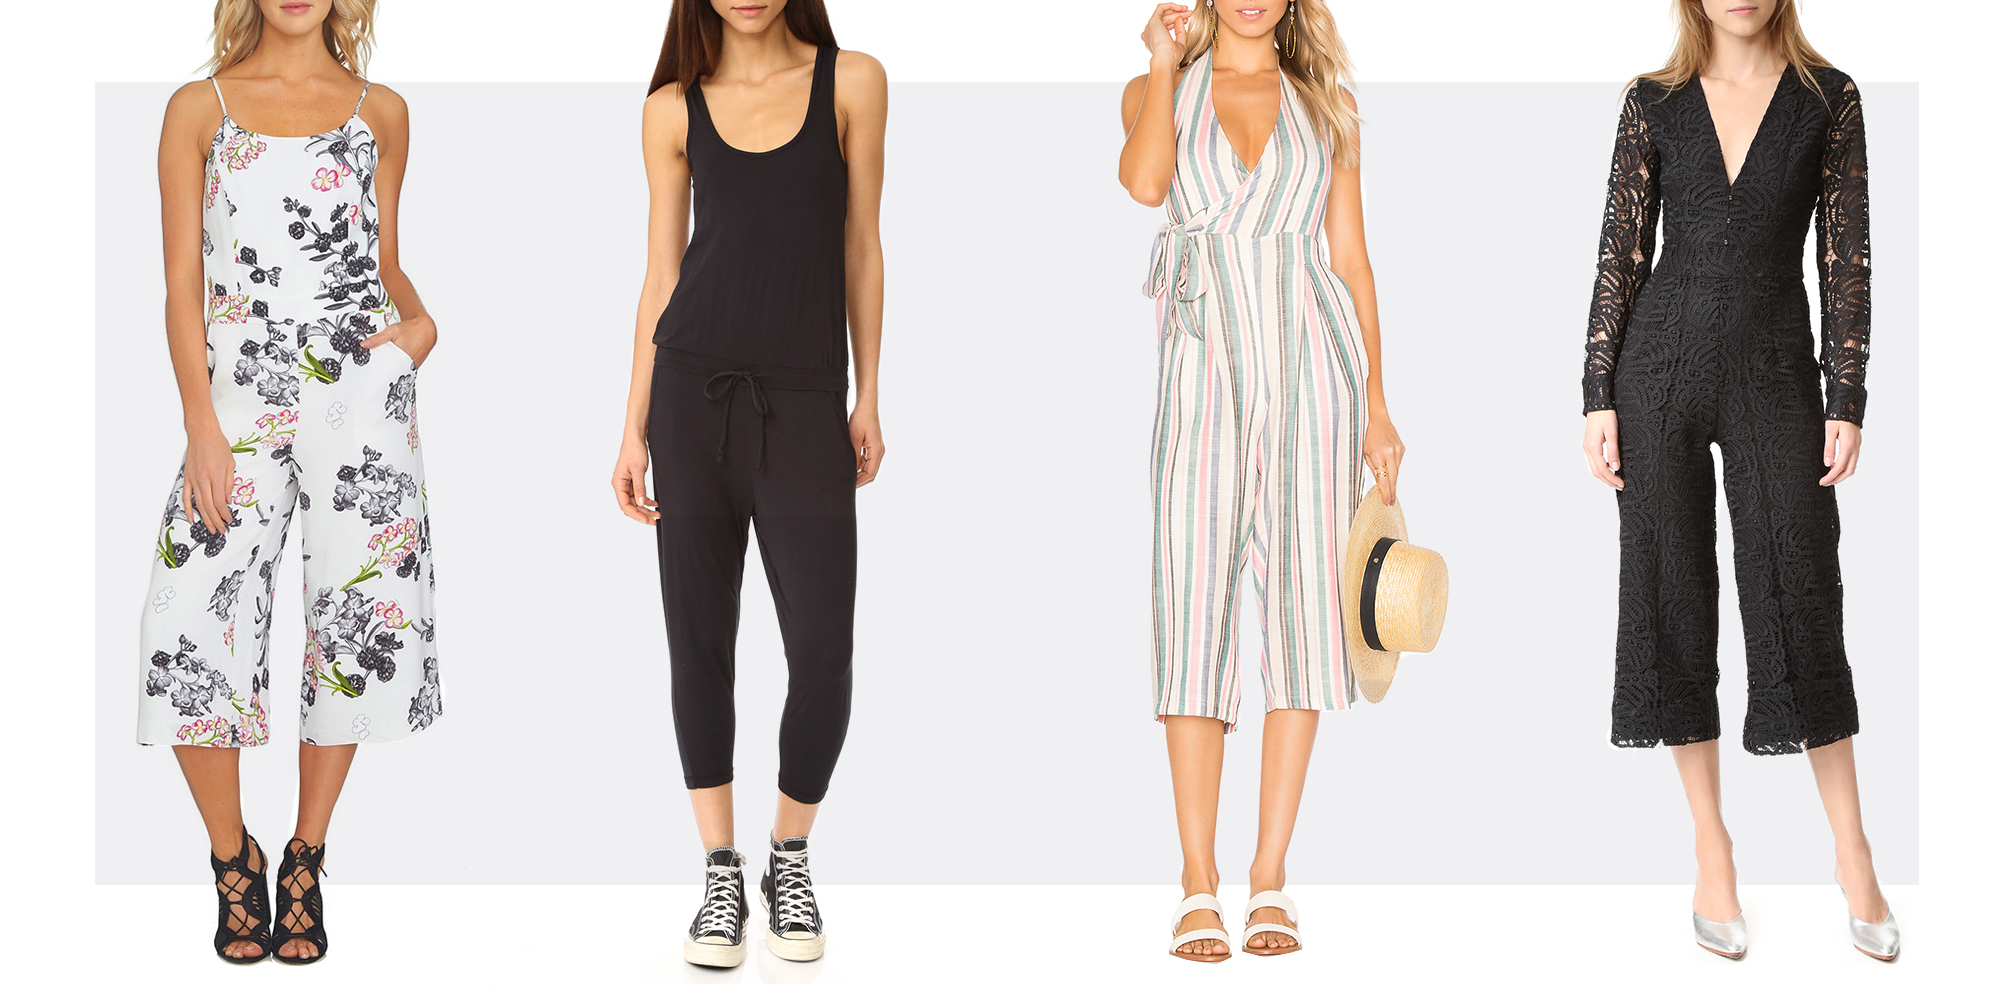 10 Best Jumpsuits For Women In 2017 Casual And Dressy